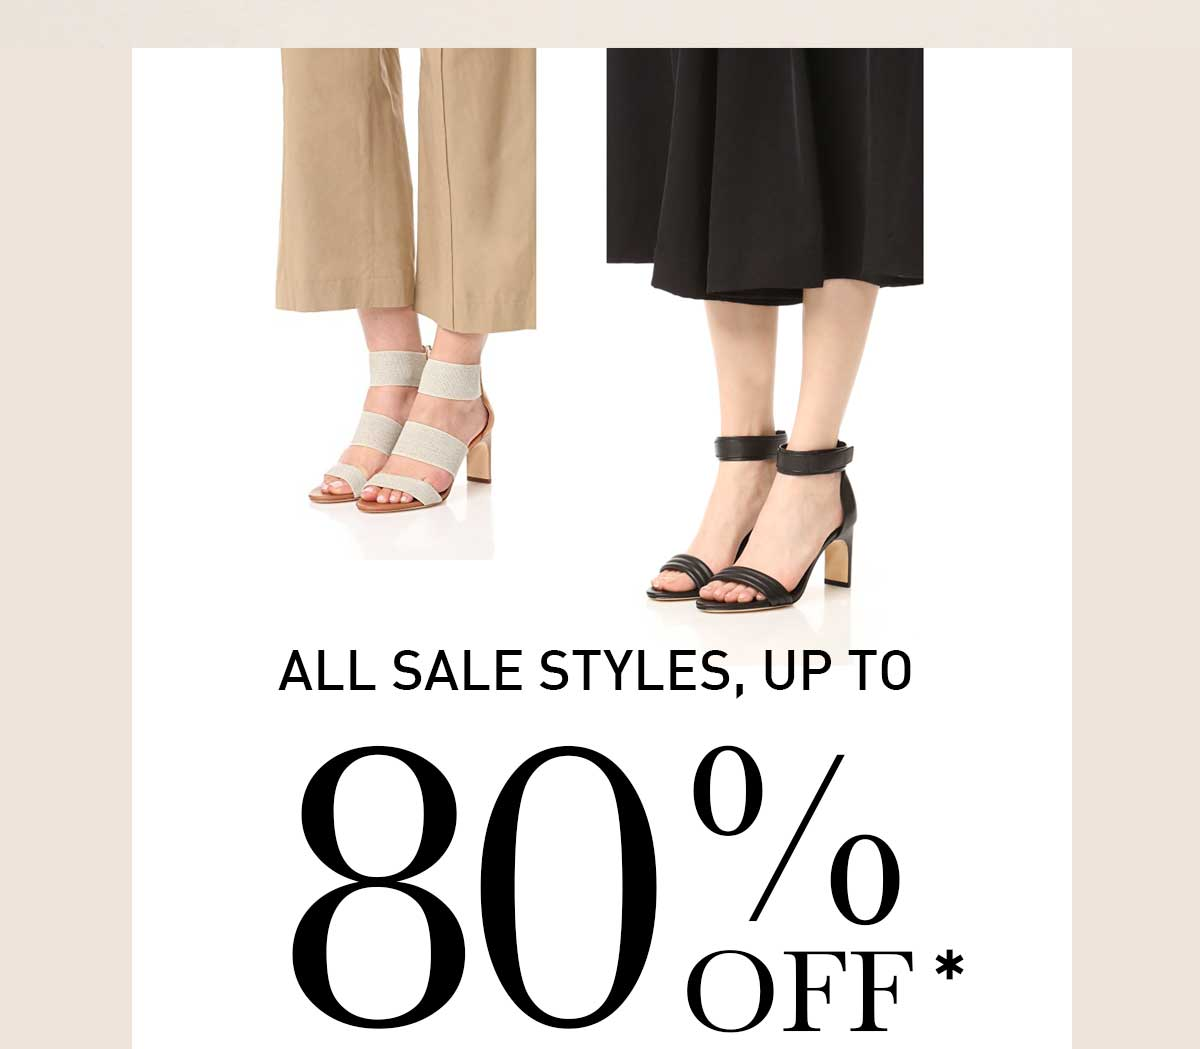 ALL SALE STYLE, UP TO 80% OFF